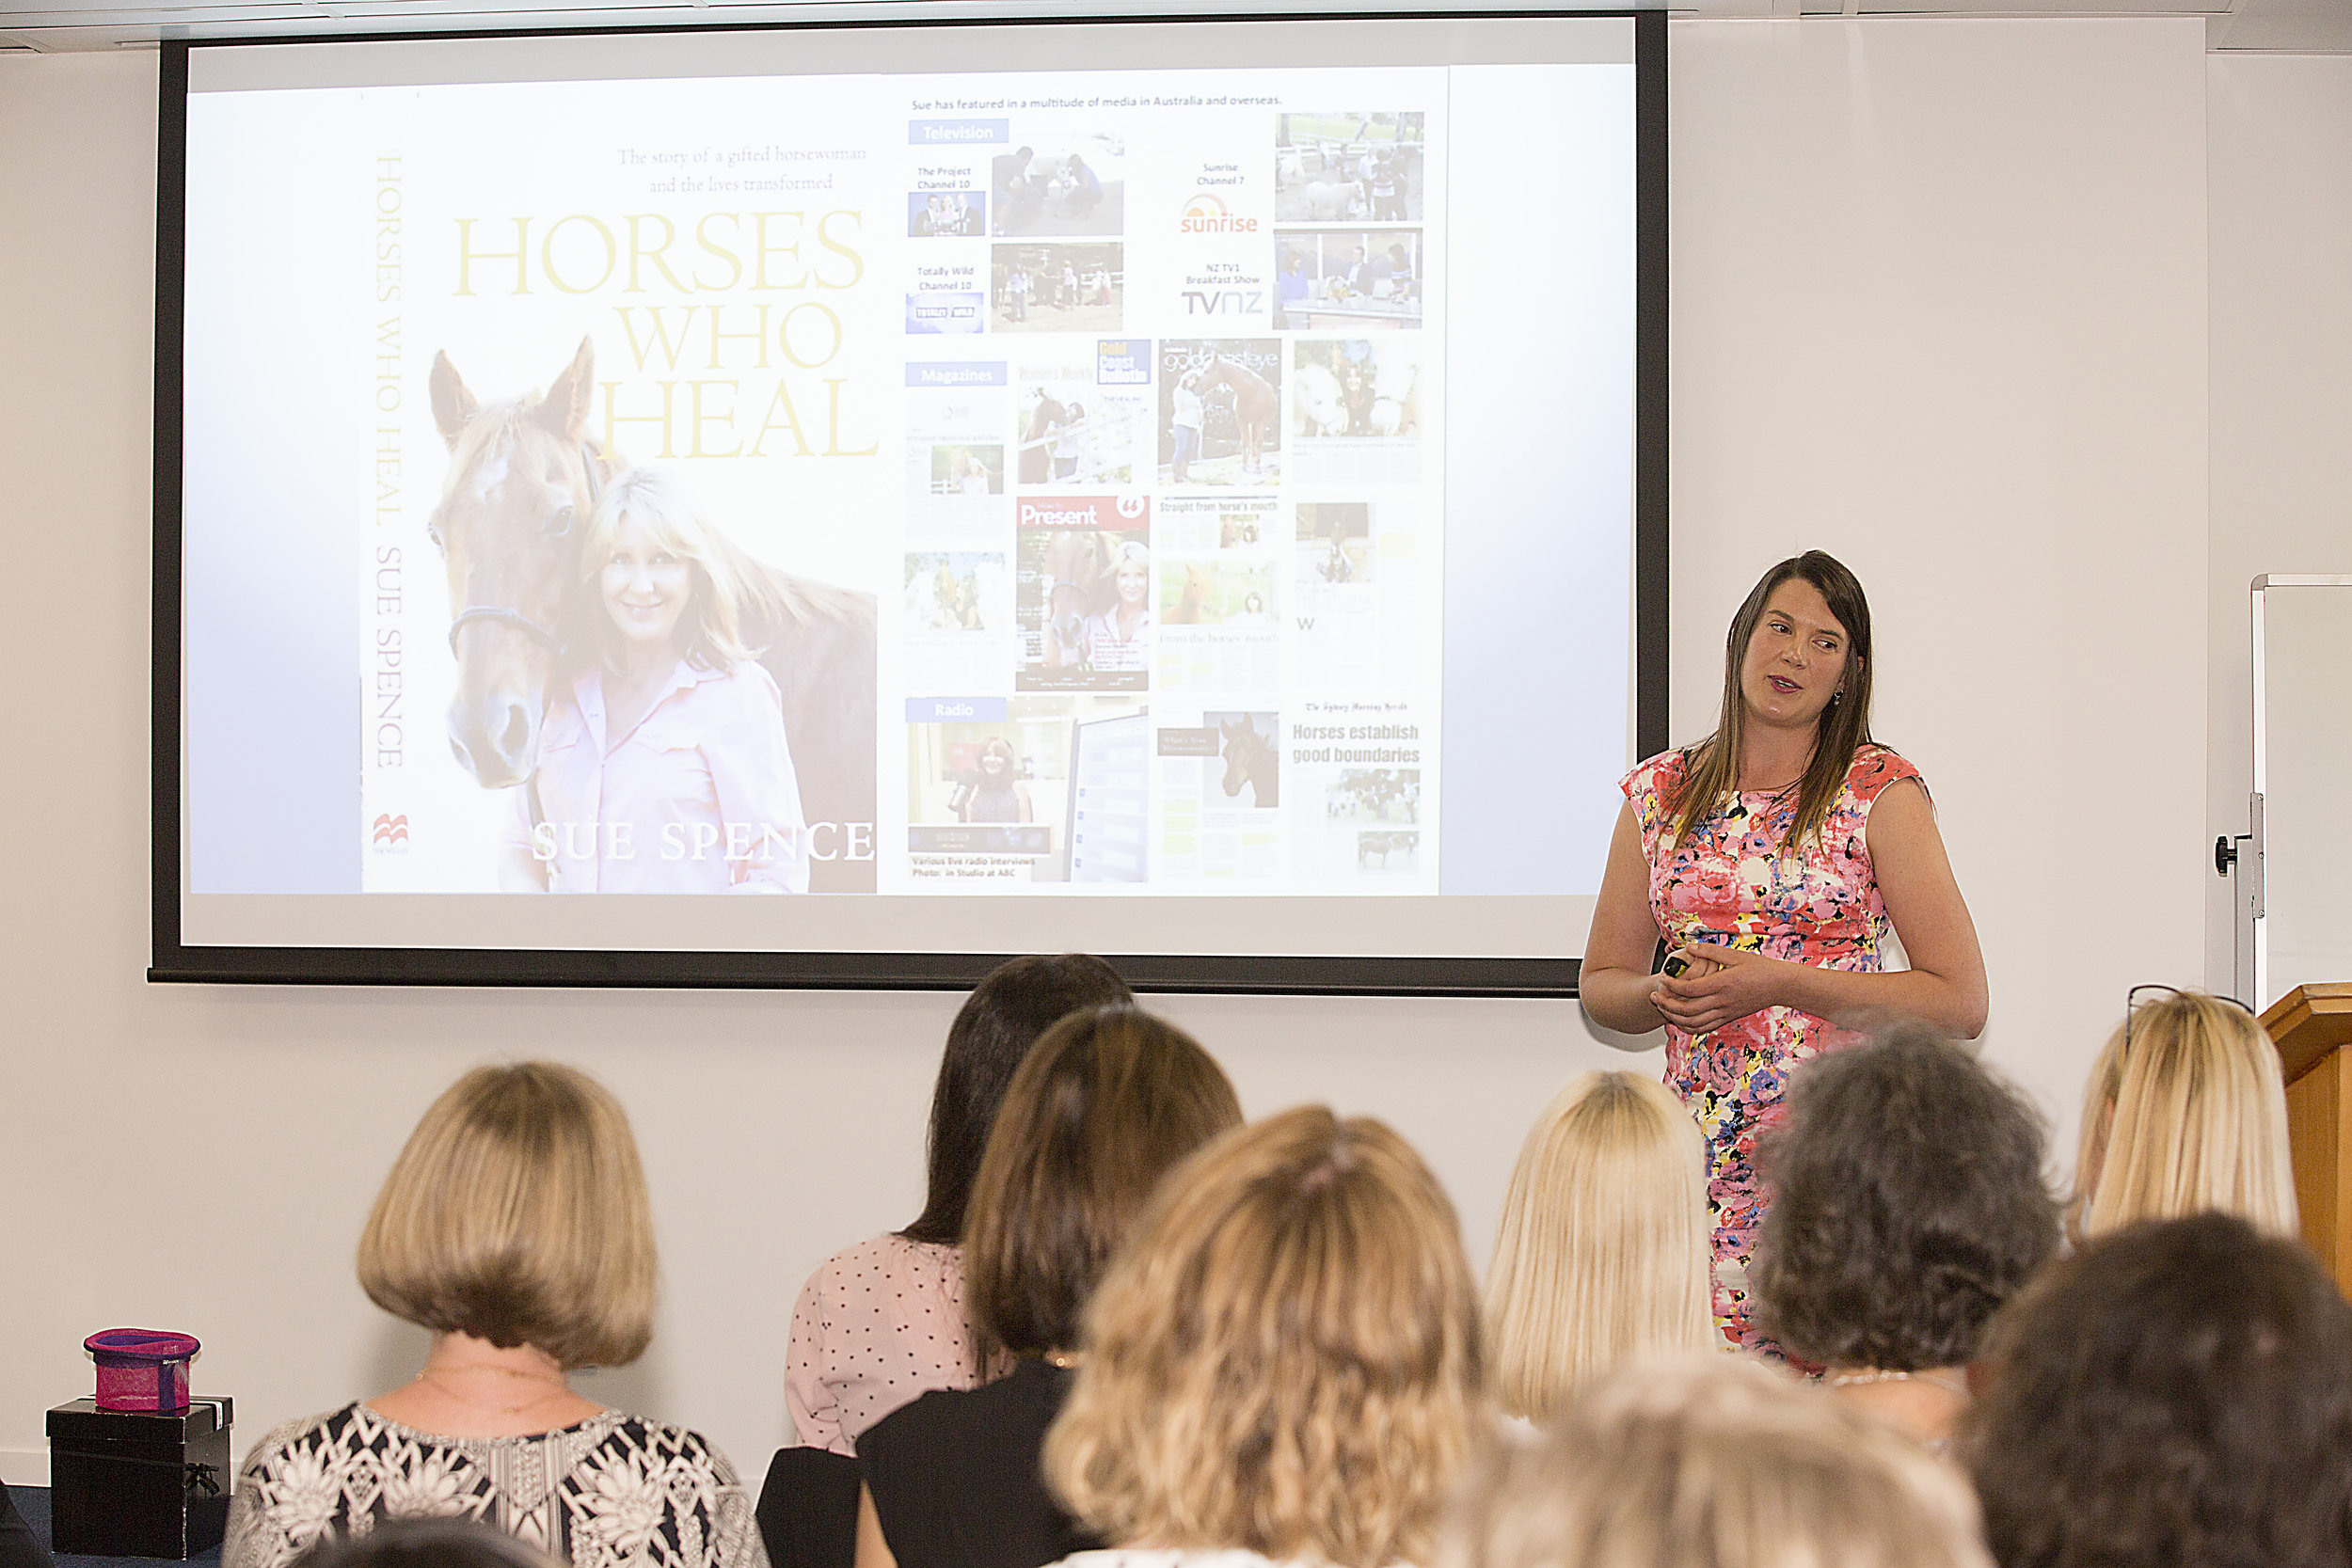 Kimberley speaking about Horses Helping Humans at Women and Business.